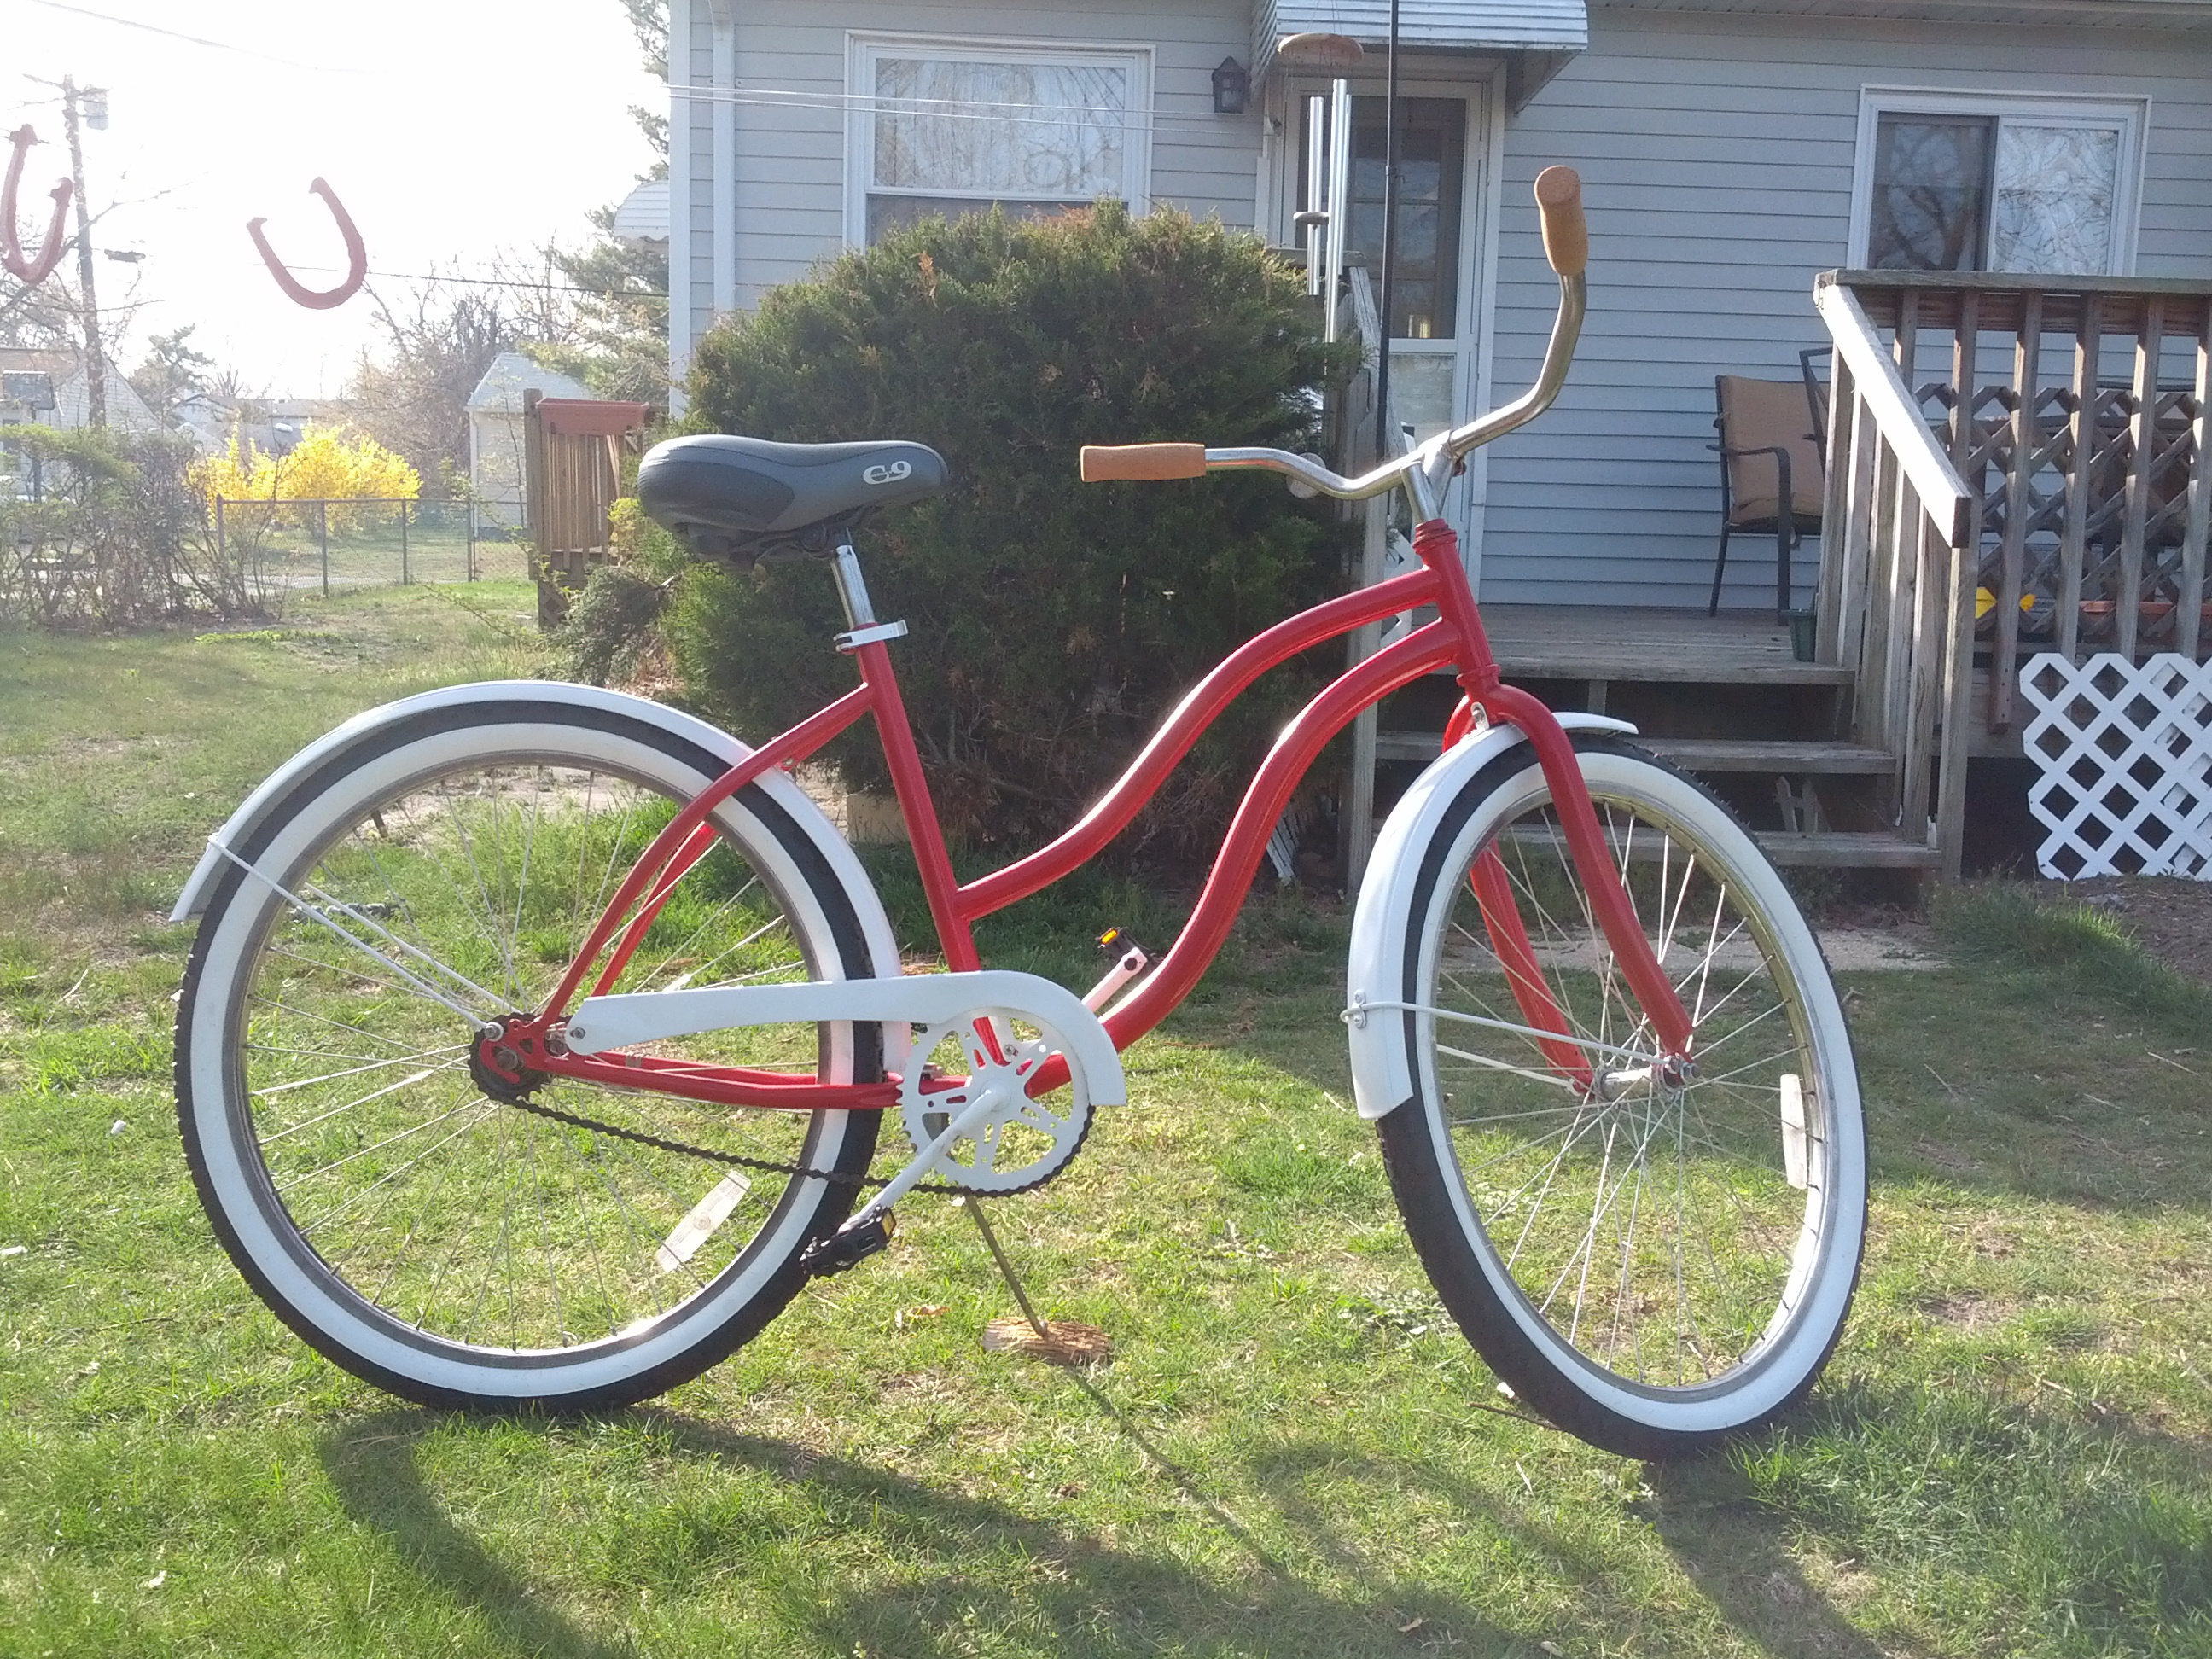 Refurbishing an Old Bicycle